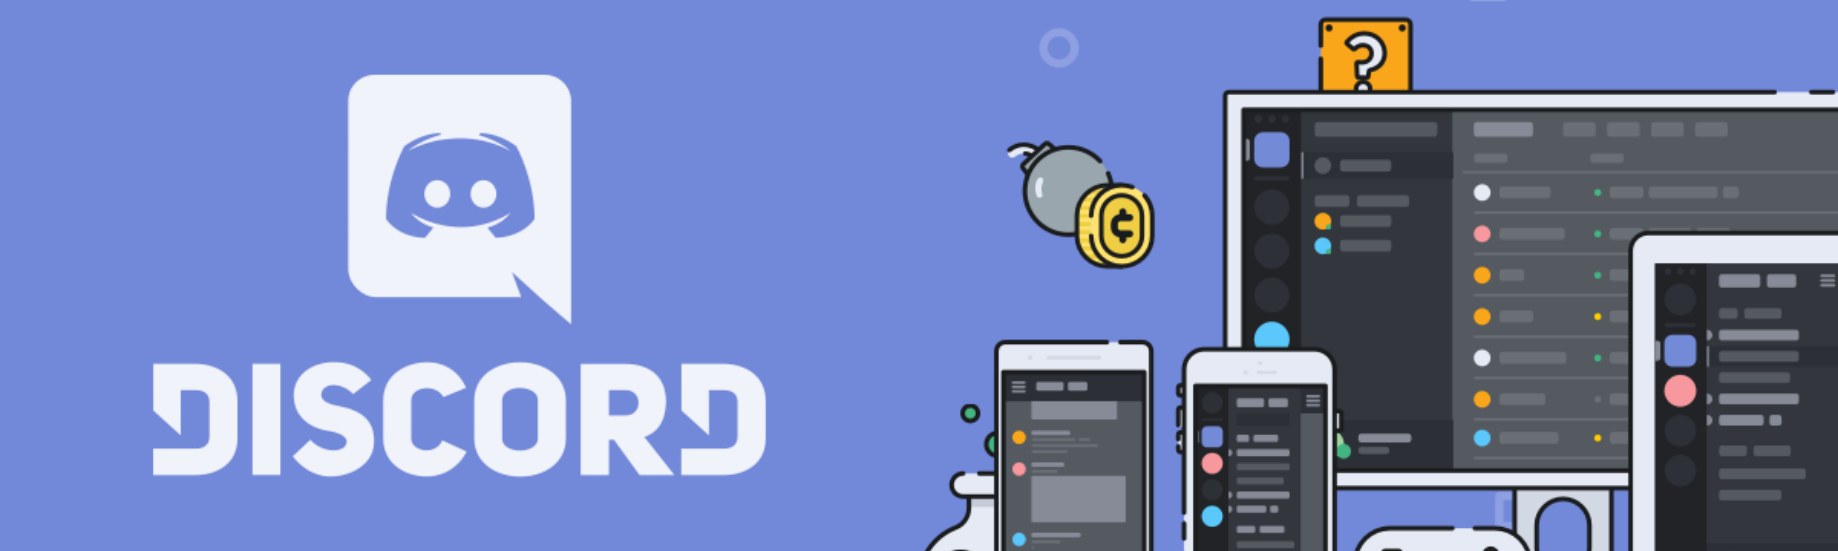 How I Grew a Niche Discord Server to 1400 Members in 3 Months